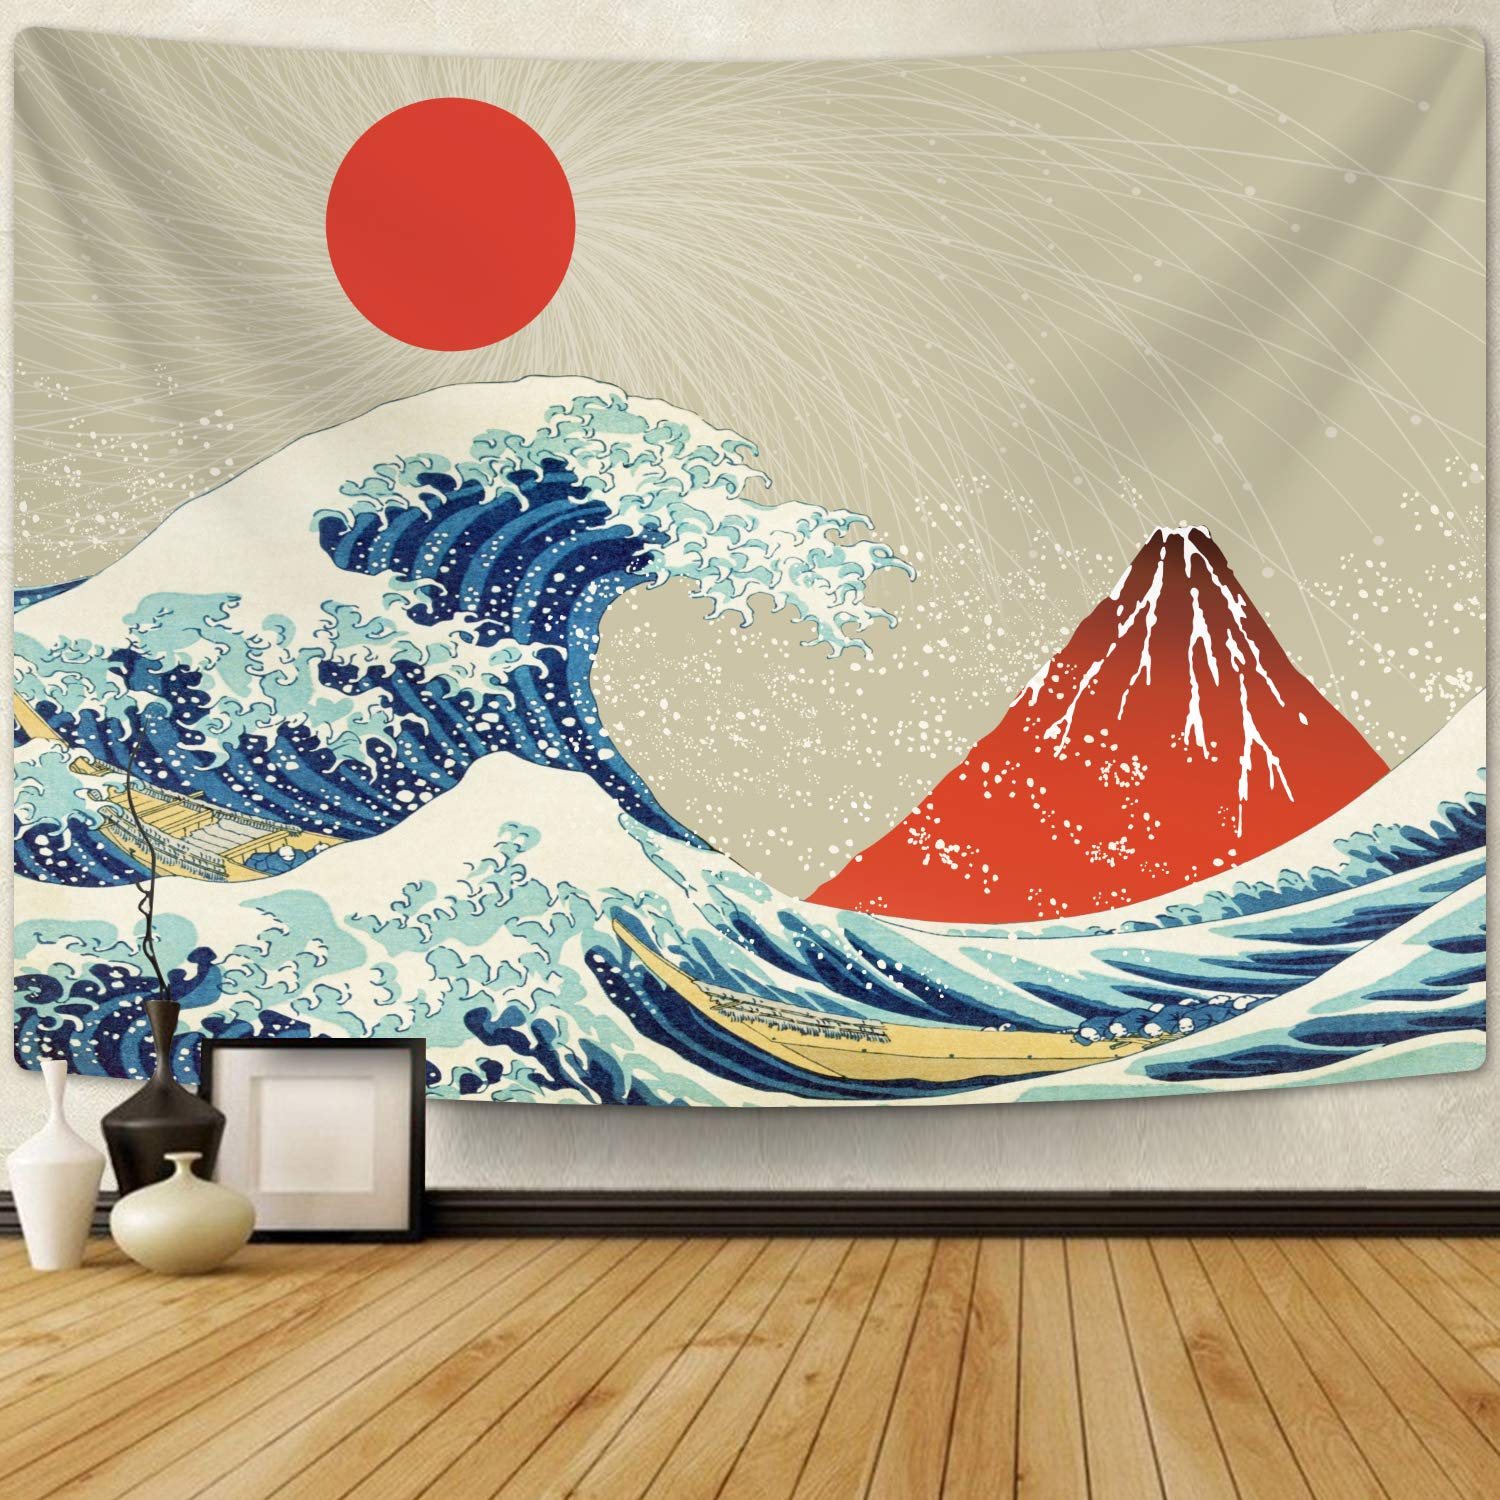 Amazoncom The Great Wave Off Kanagawa Tapiz Con Volcán